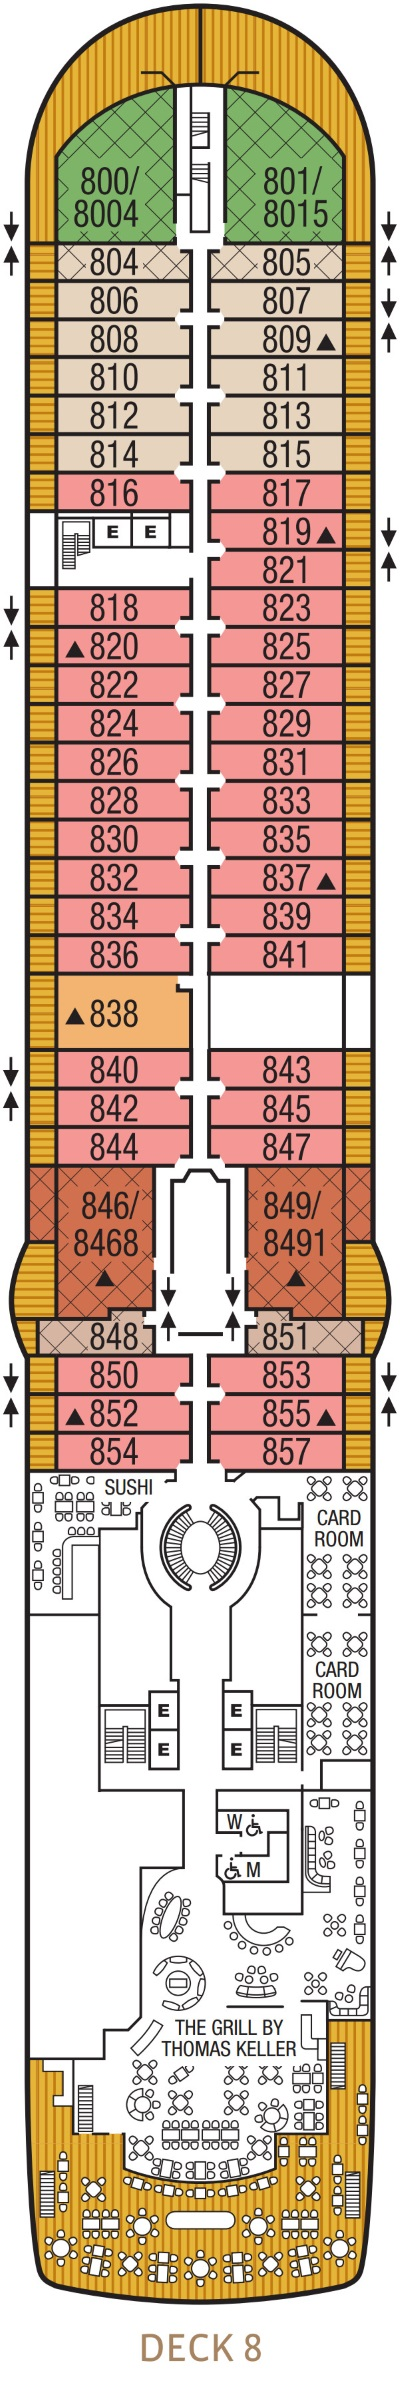 Seabourn Encore Deck 8 layout